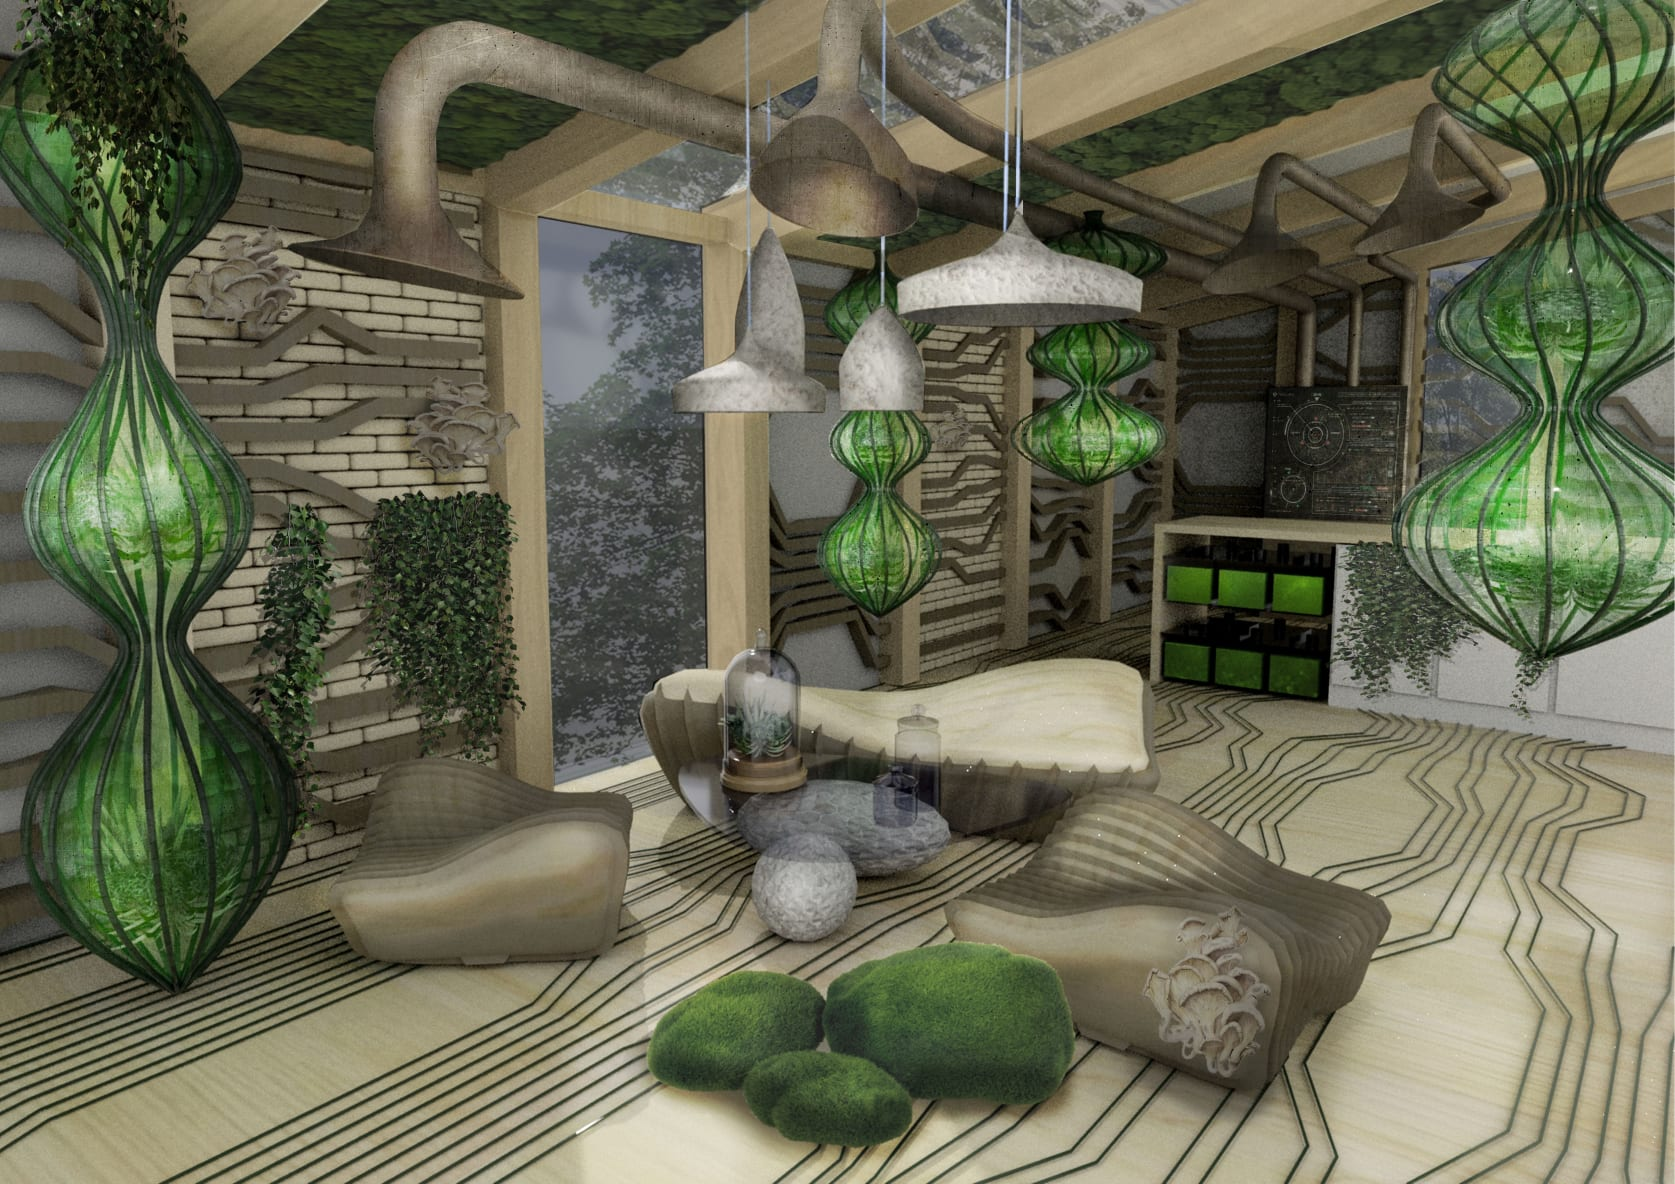 An artist's impression of The Ome, an apartment made from living materials